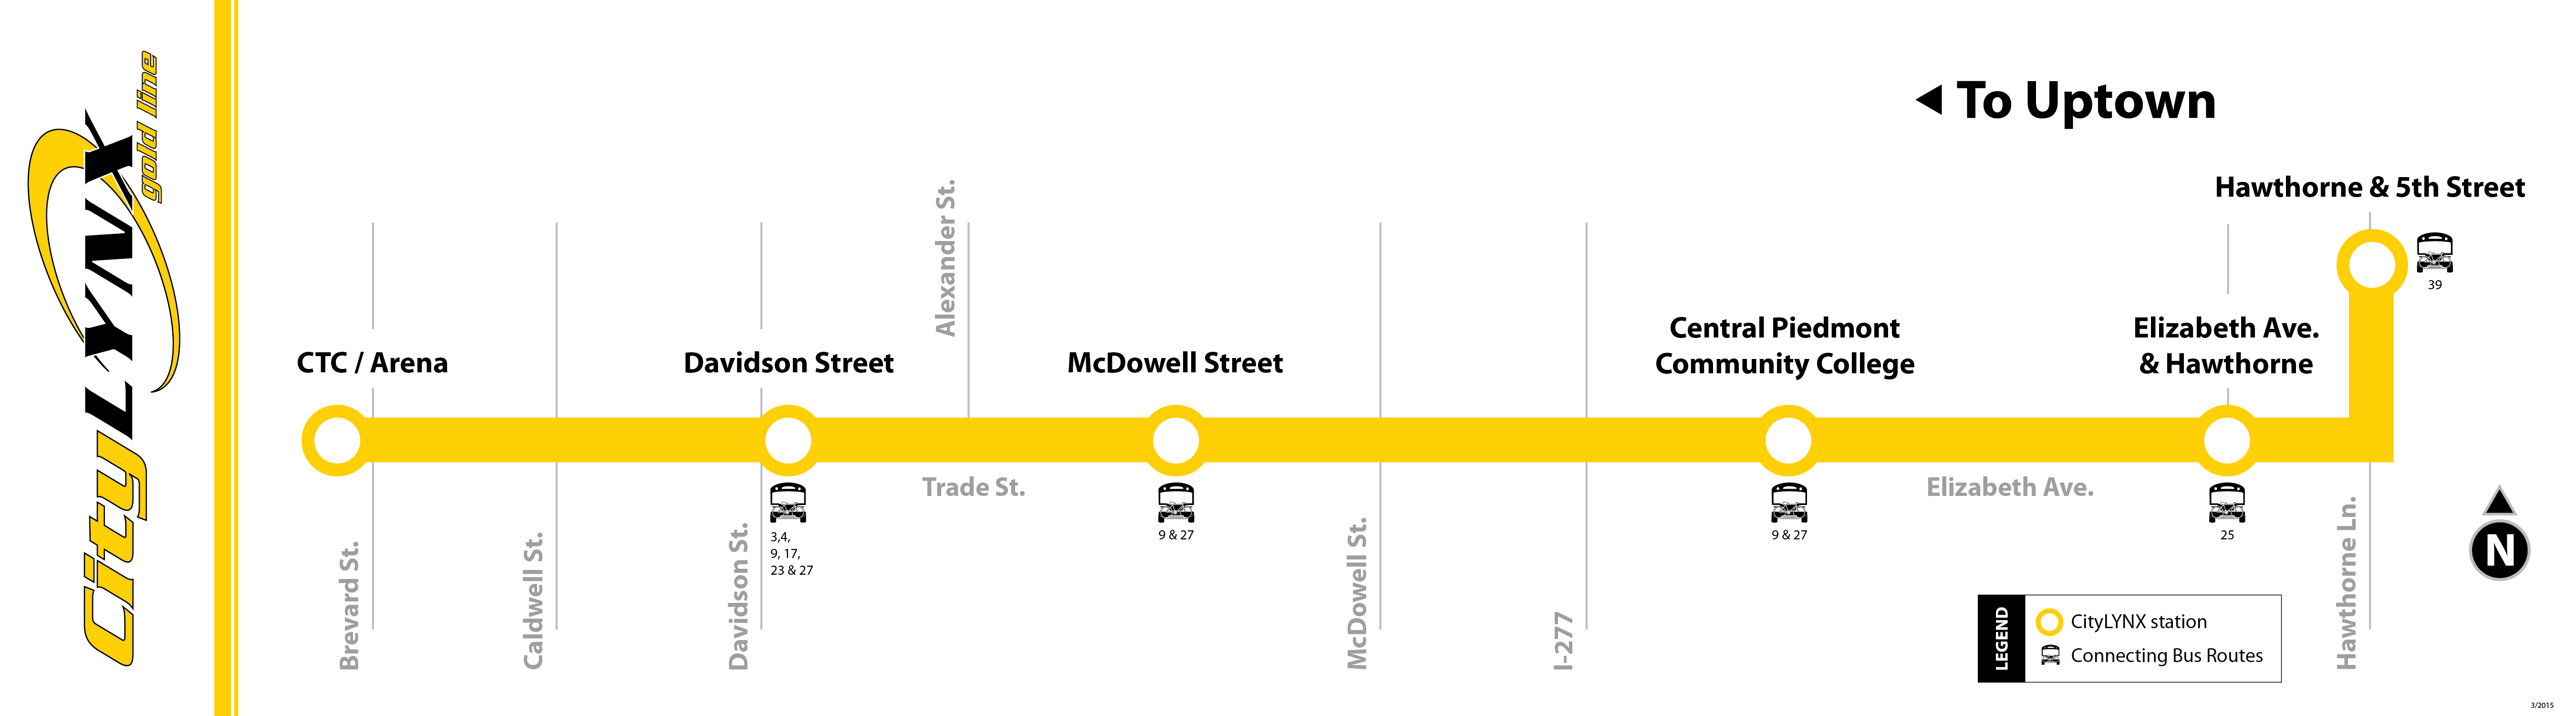 Picture map of gold line street car. The service starts at the Charlotte Transit Center and ends on Hawthorne & 5th Street